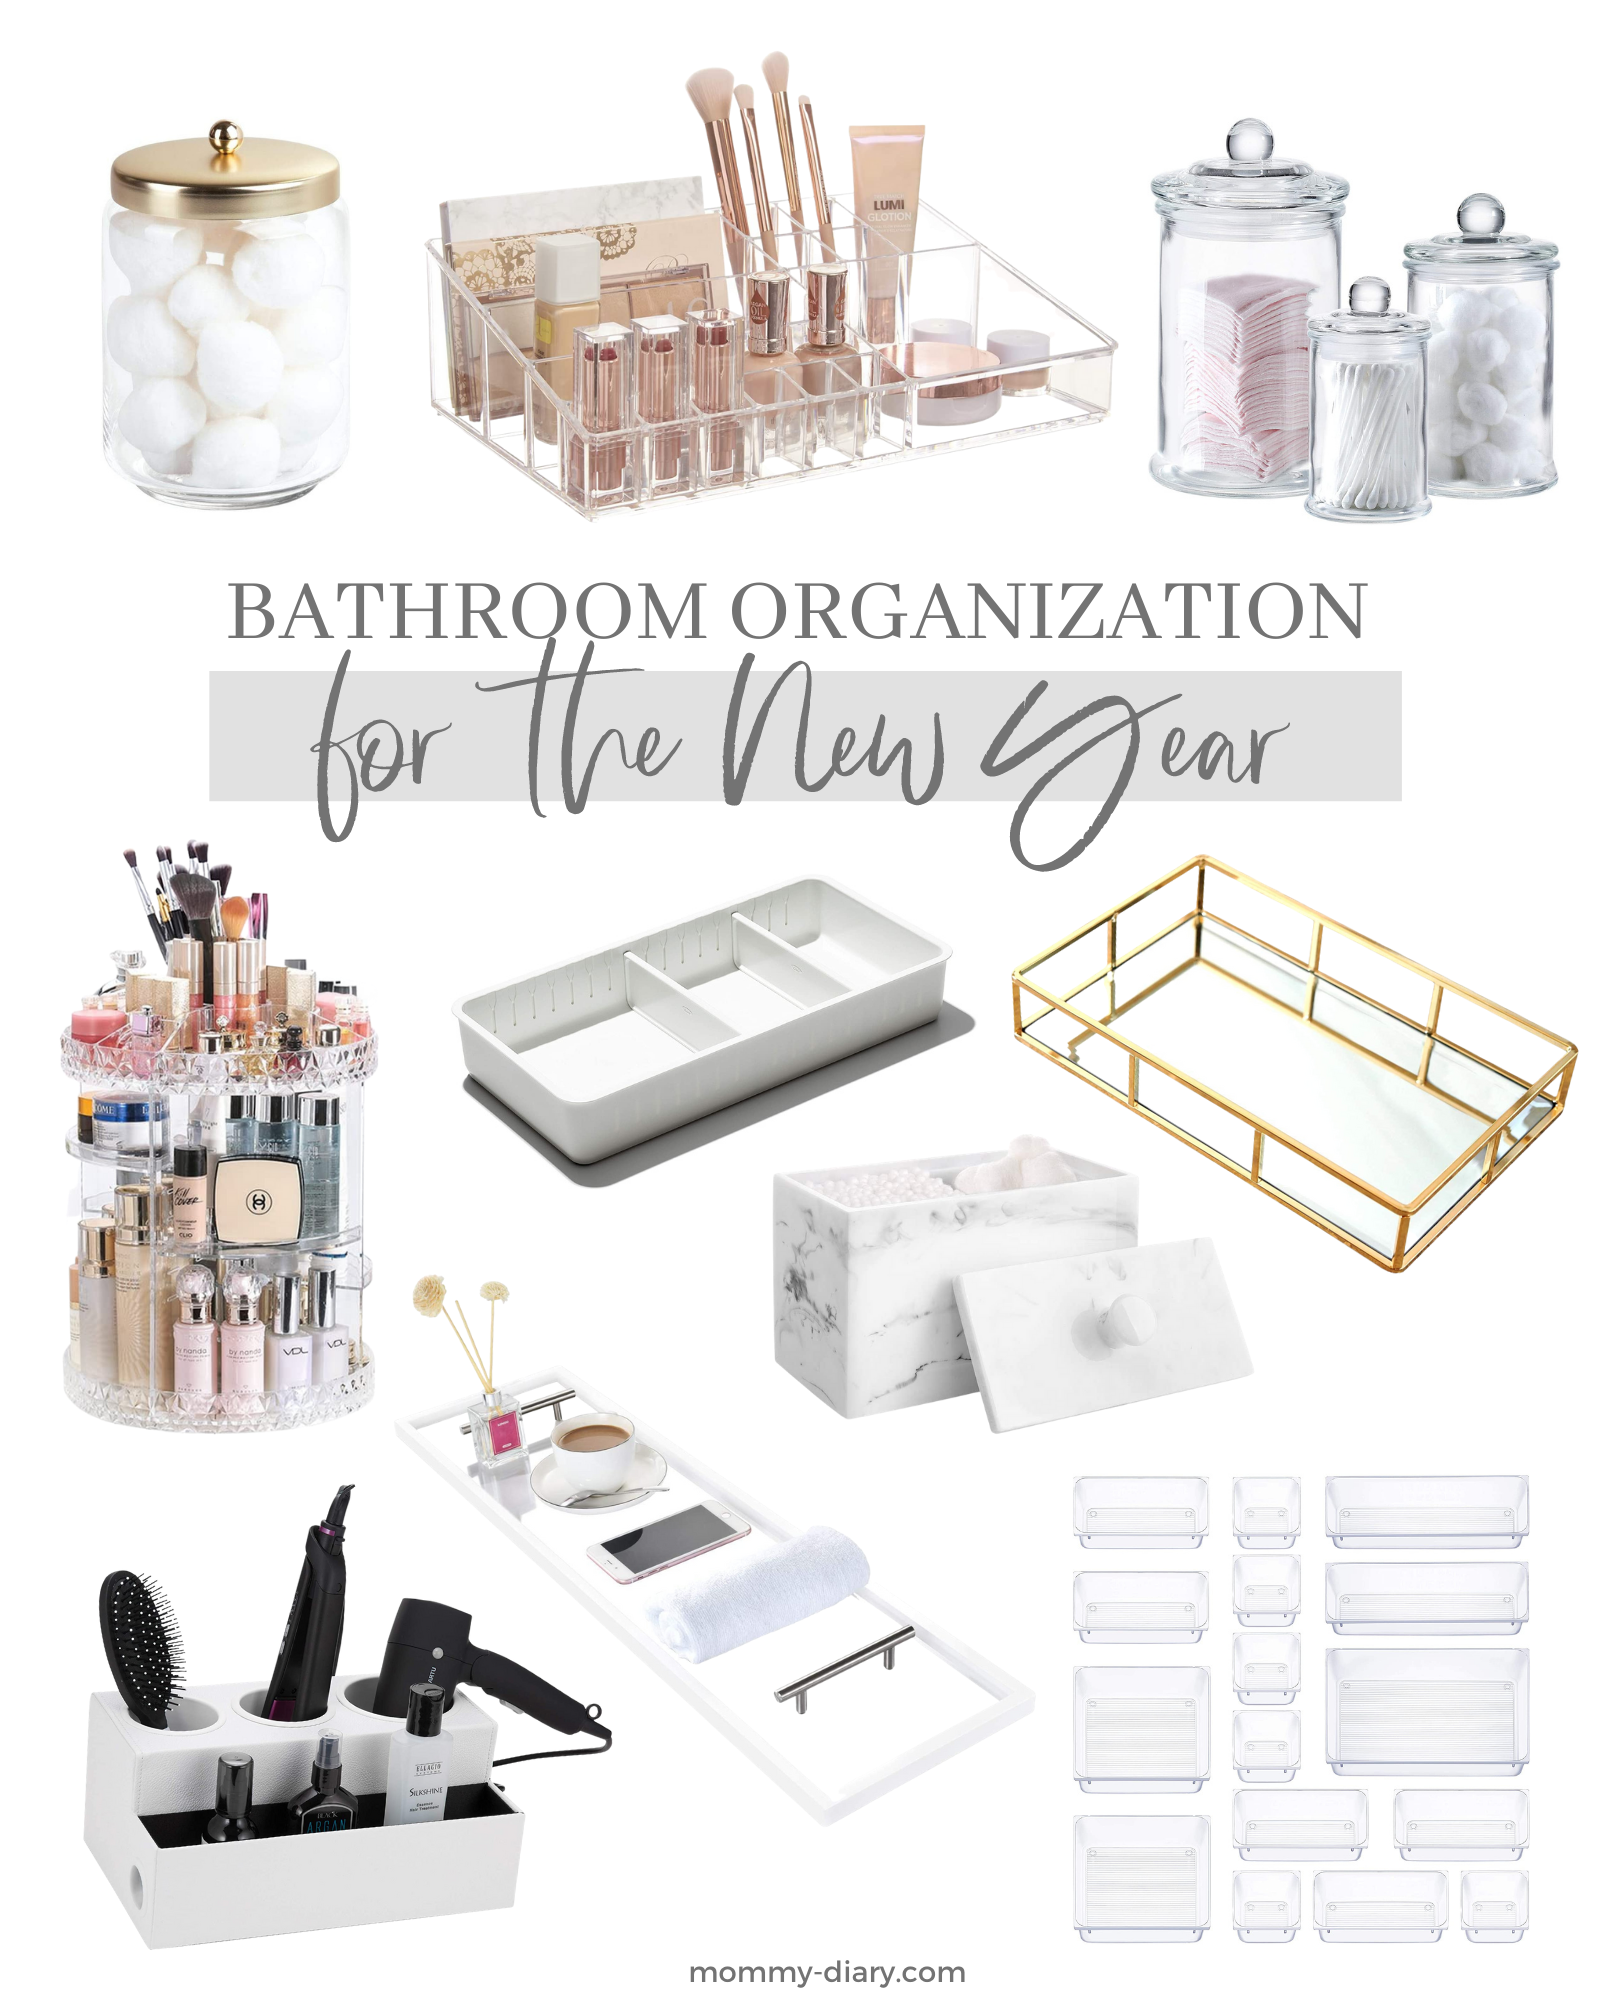 Bathroom Organization for the New Year